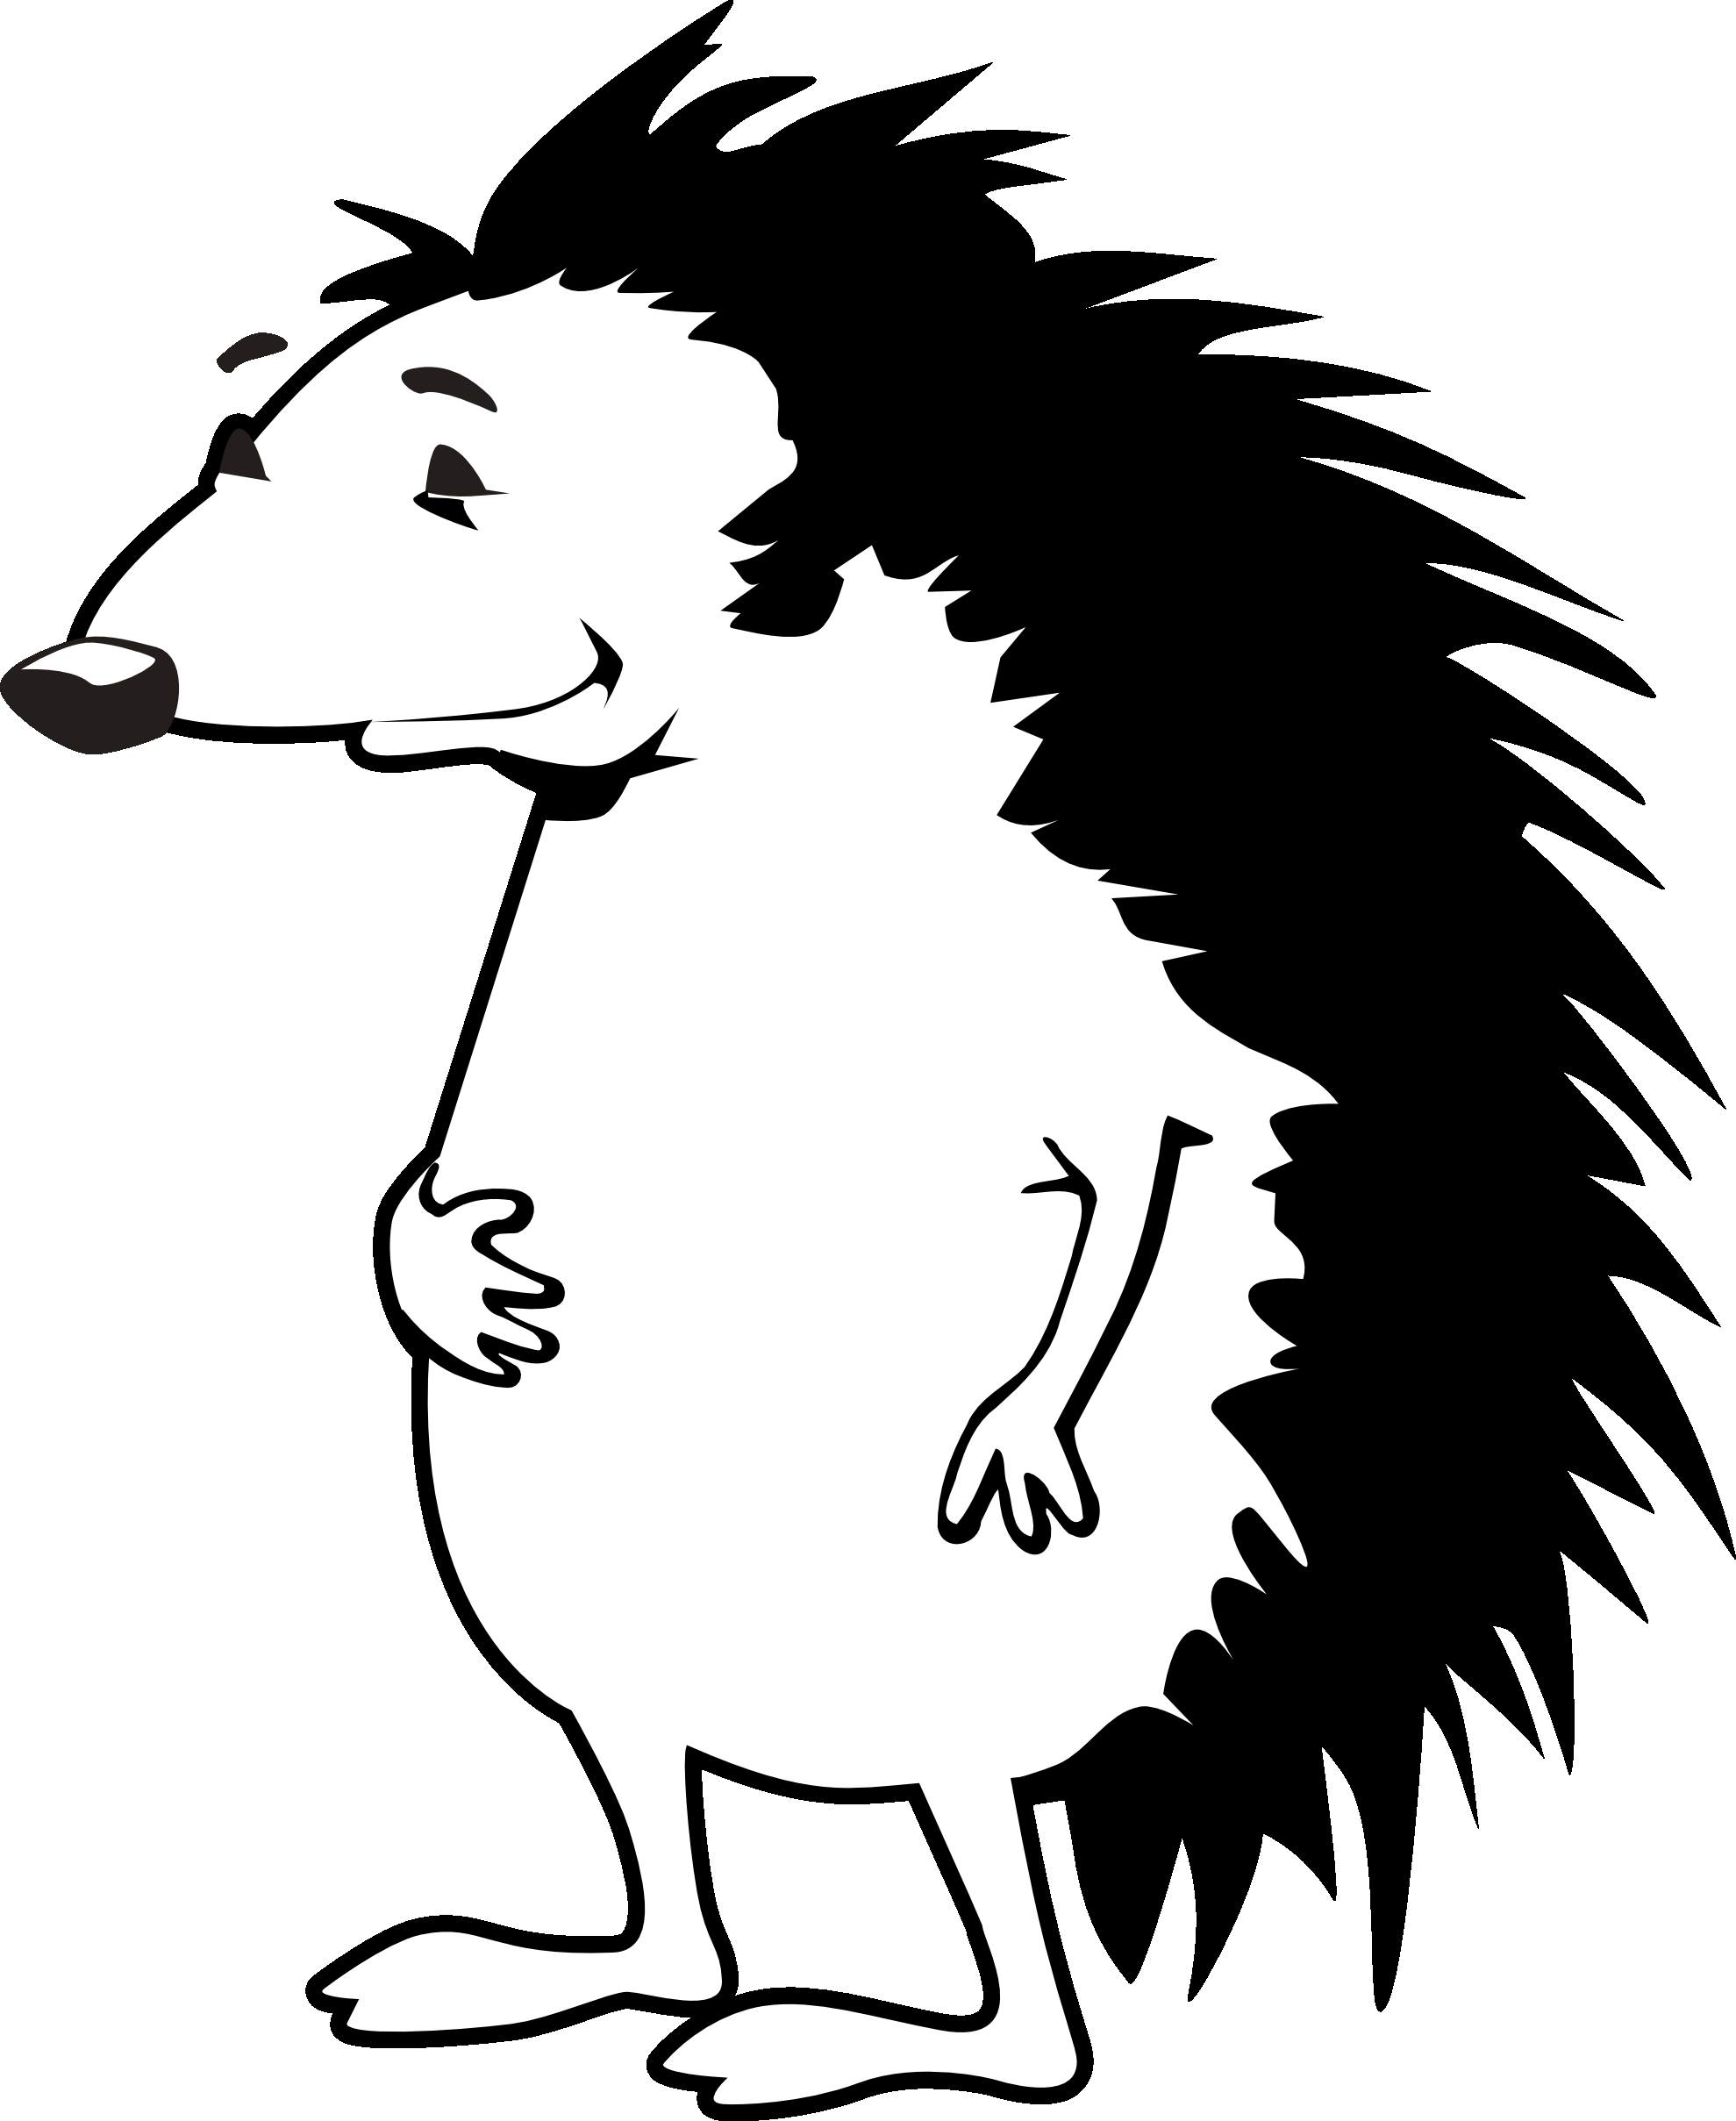 porcupine coloring page - porcupine coloring pages